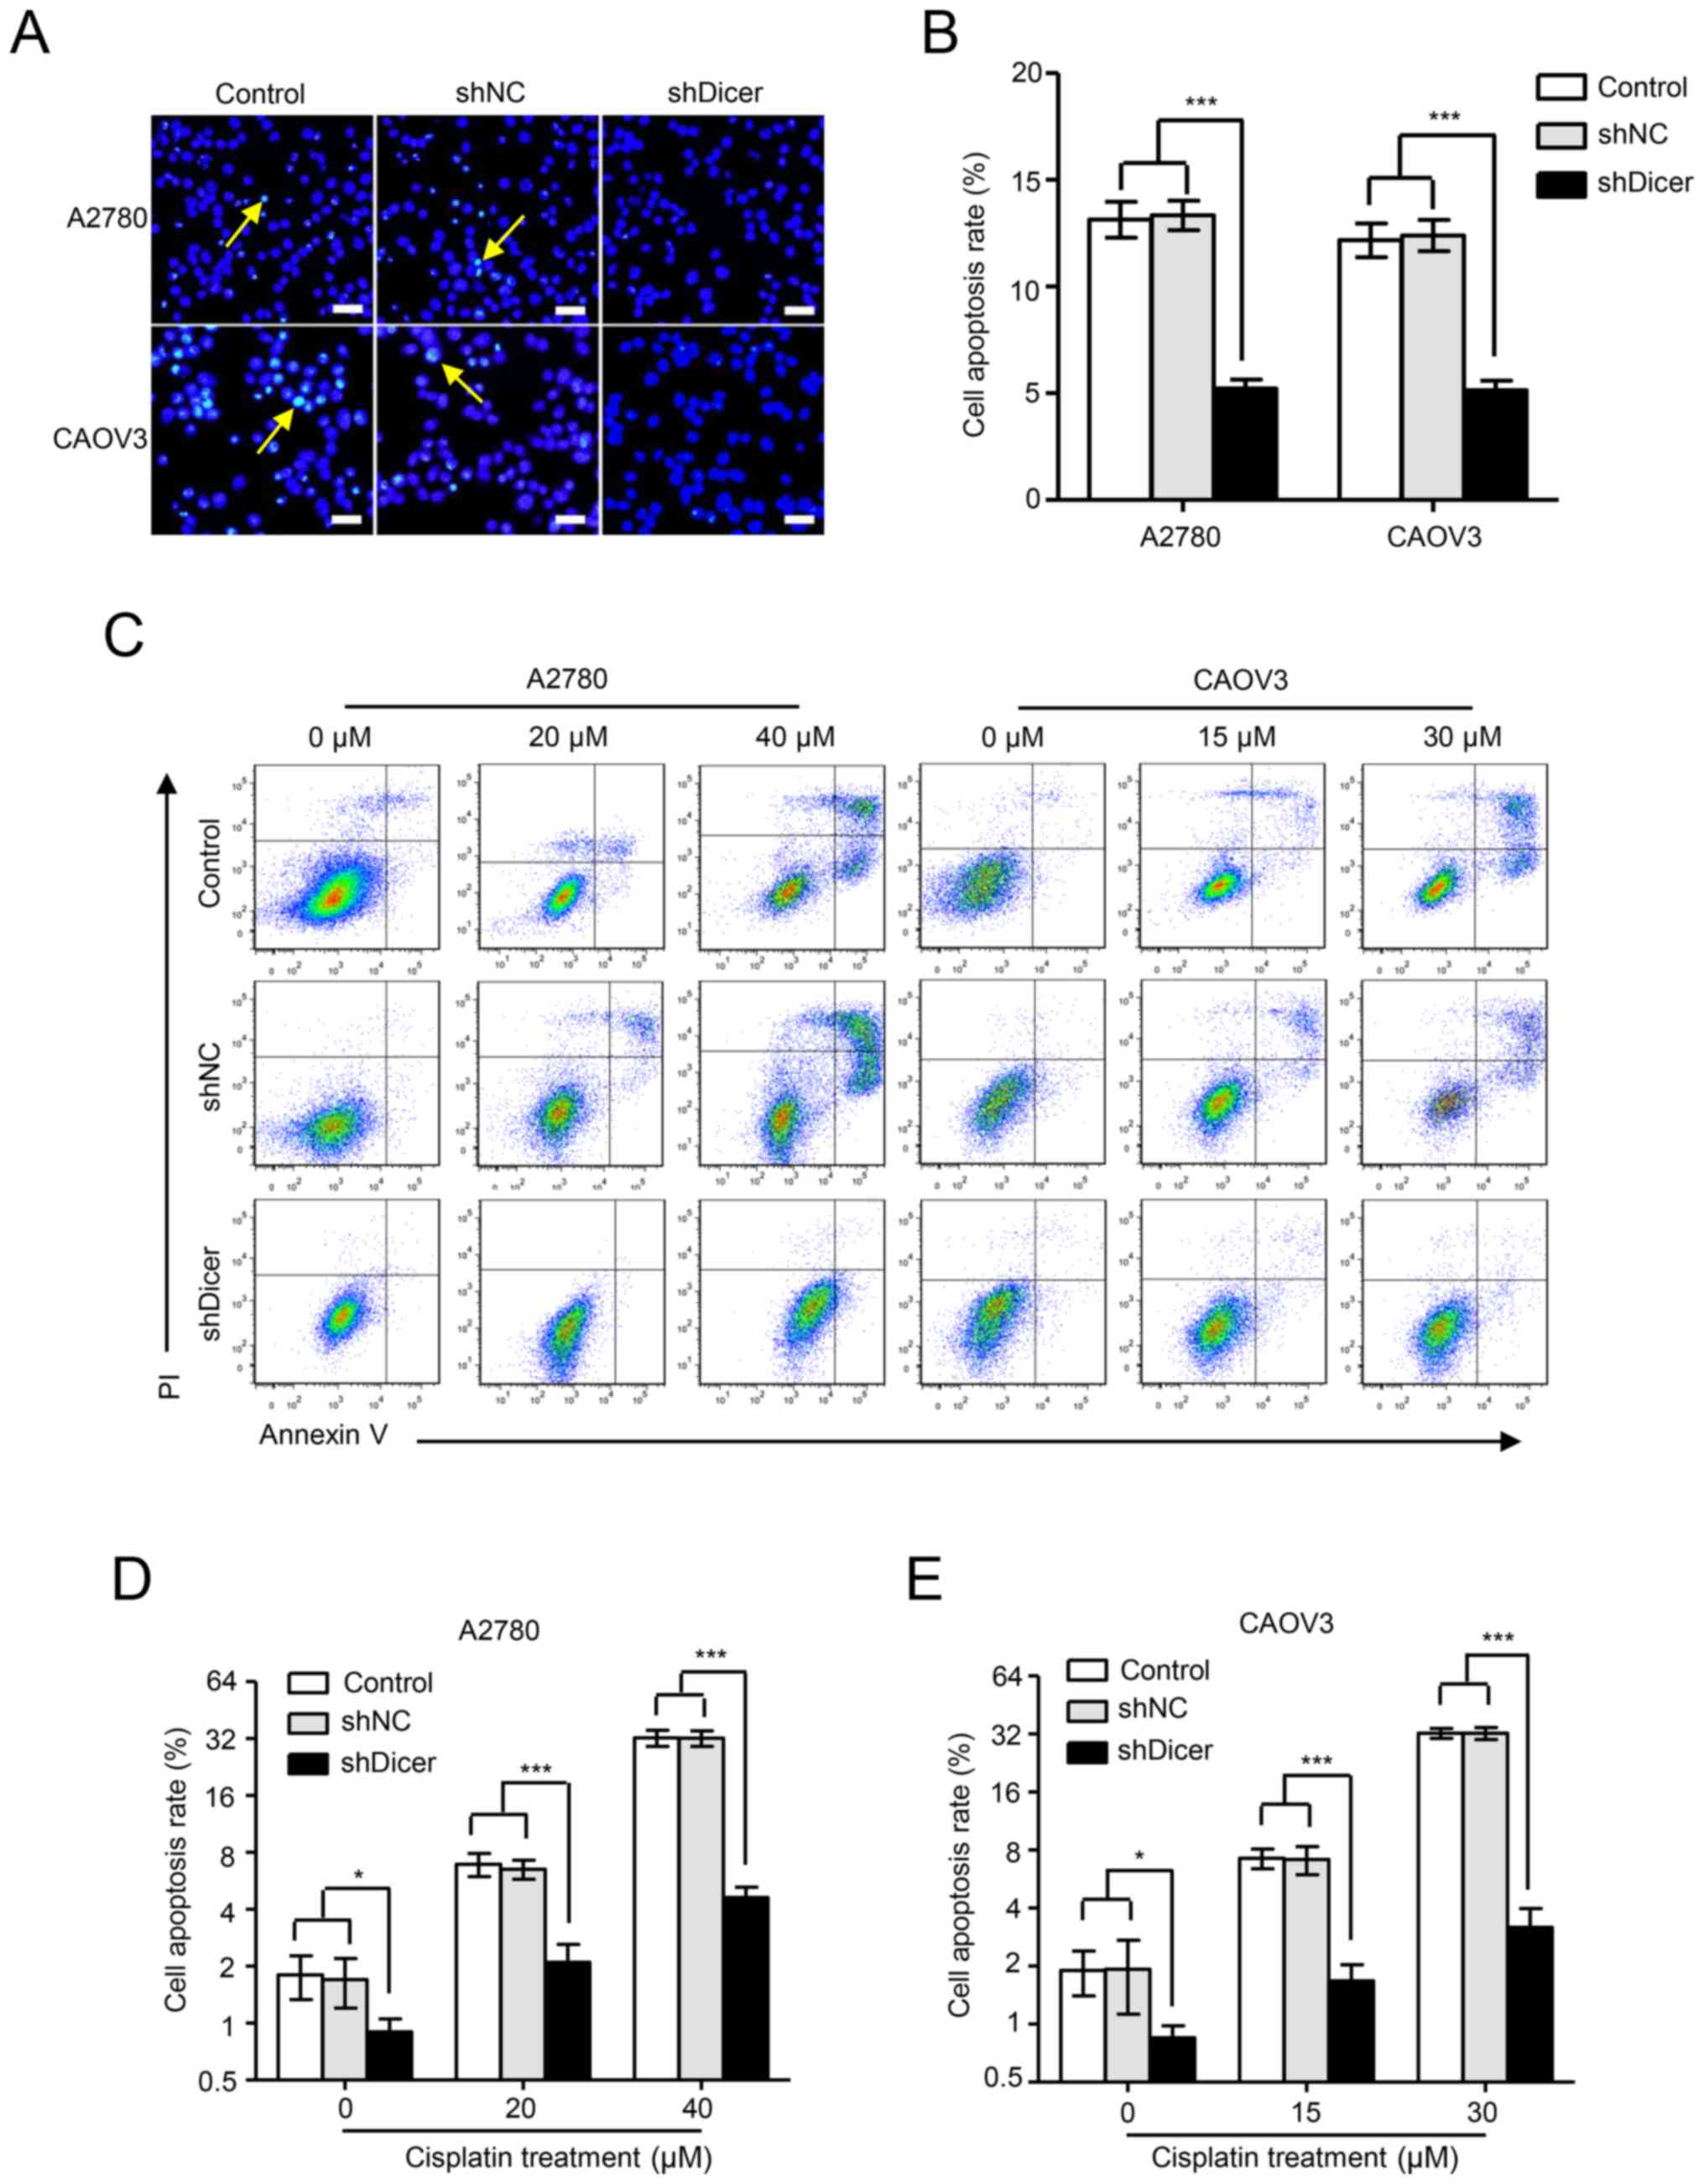 Dicer Affects Cisplatin Mediated Apoptosis In Epithelial Ovarian Cancer Cells